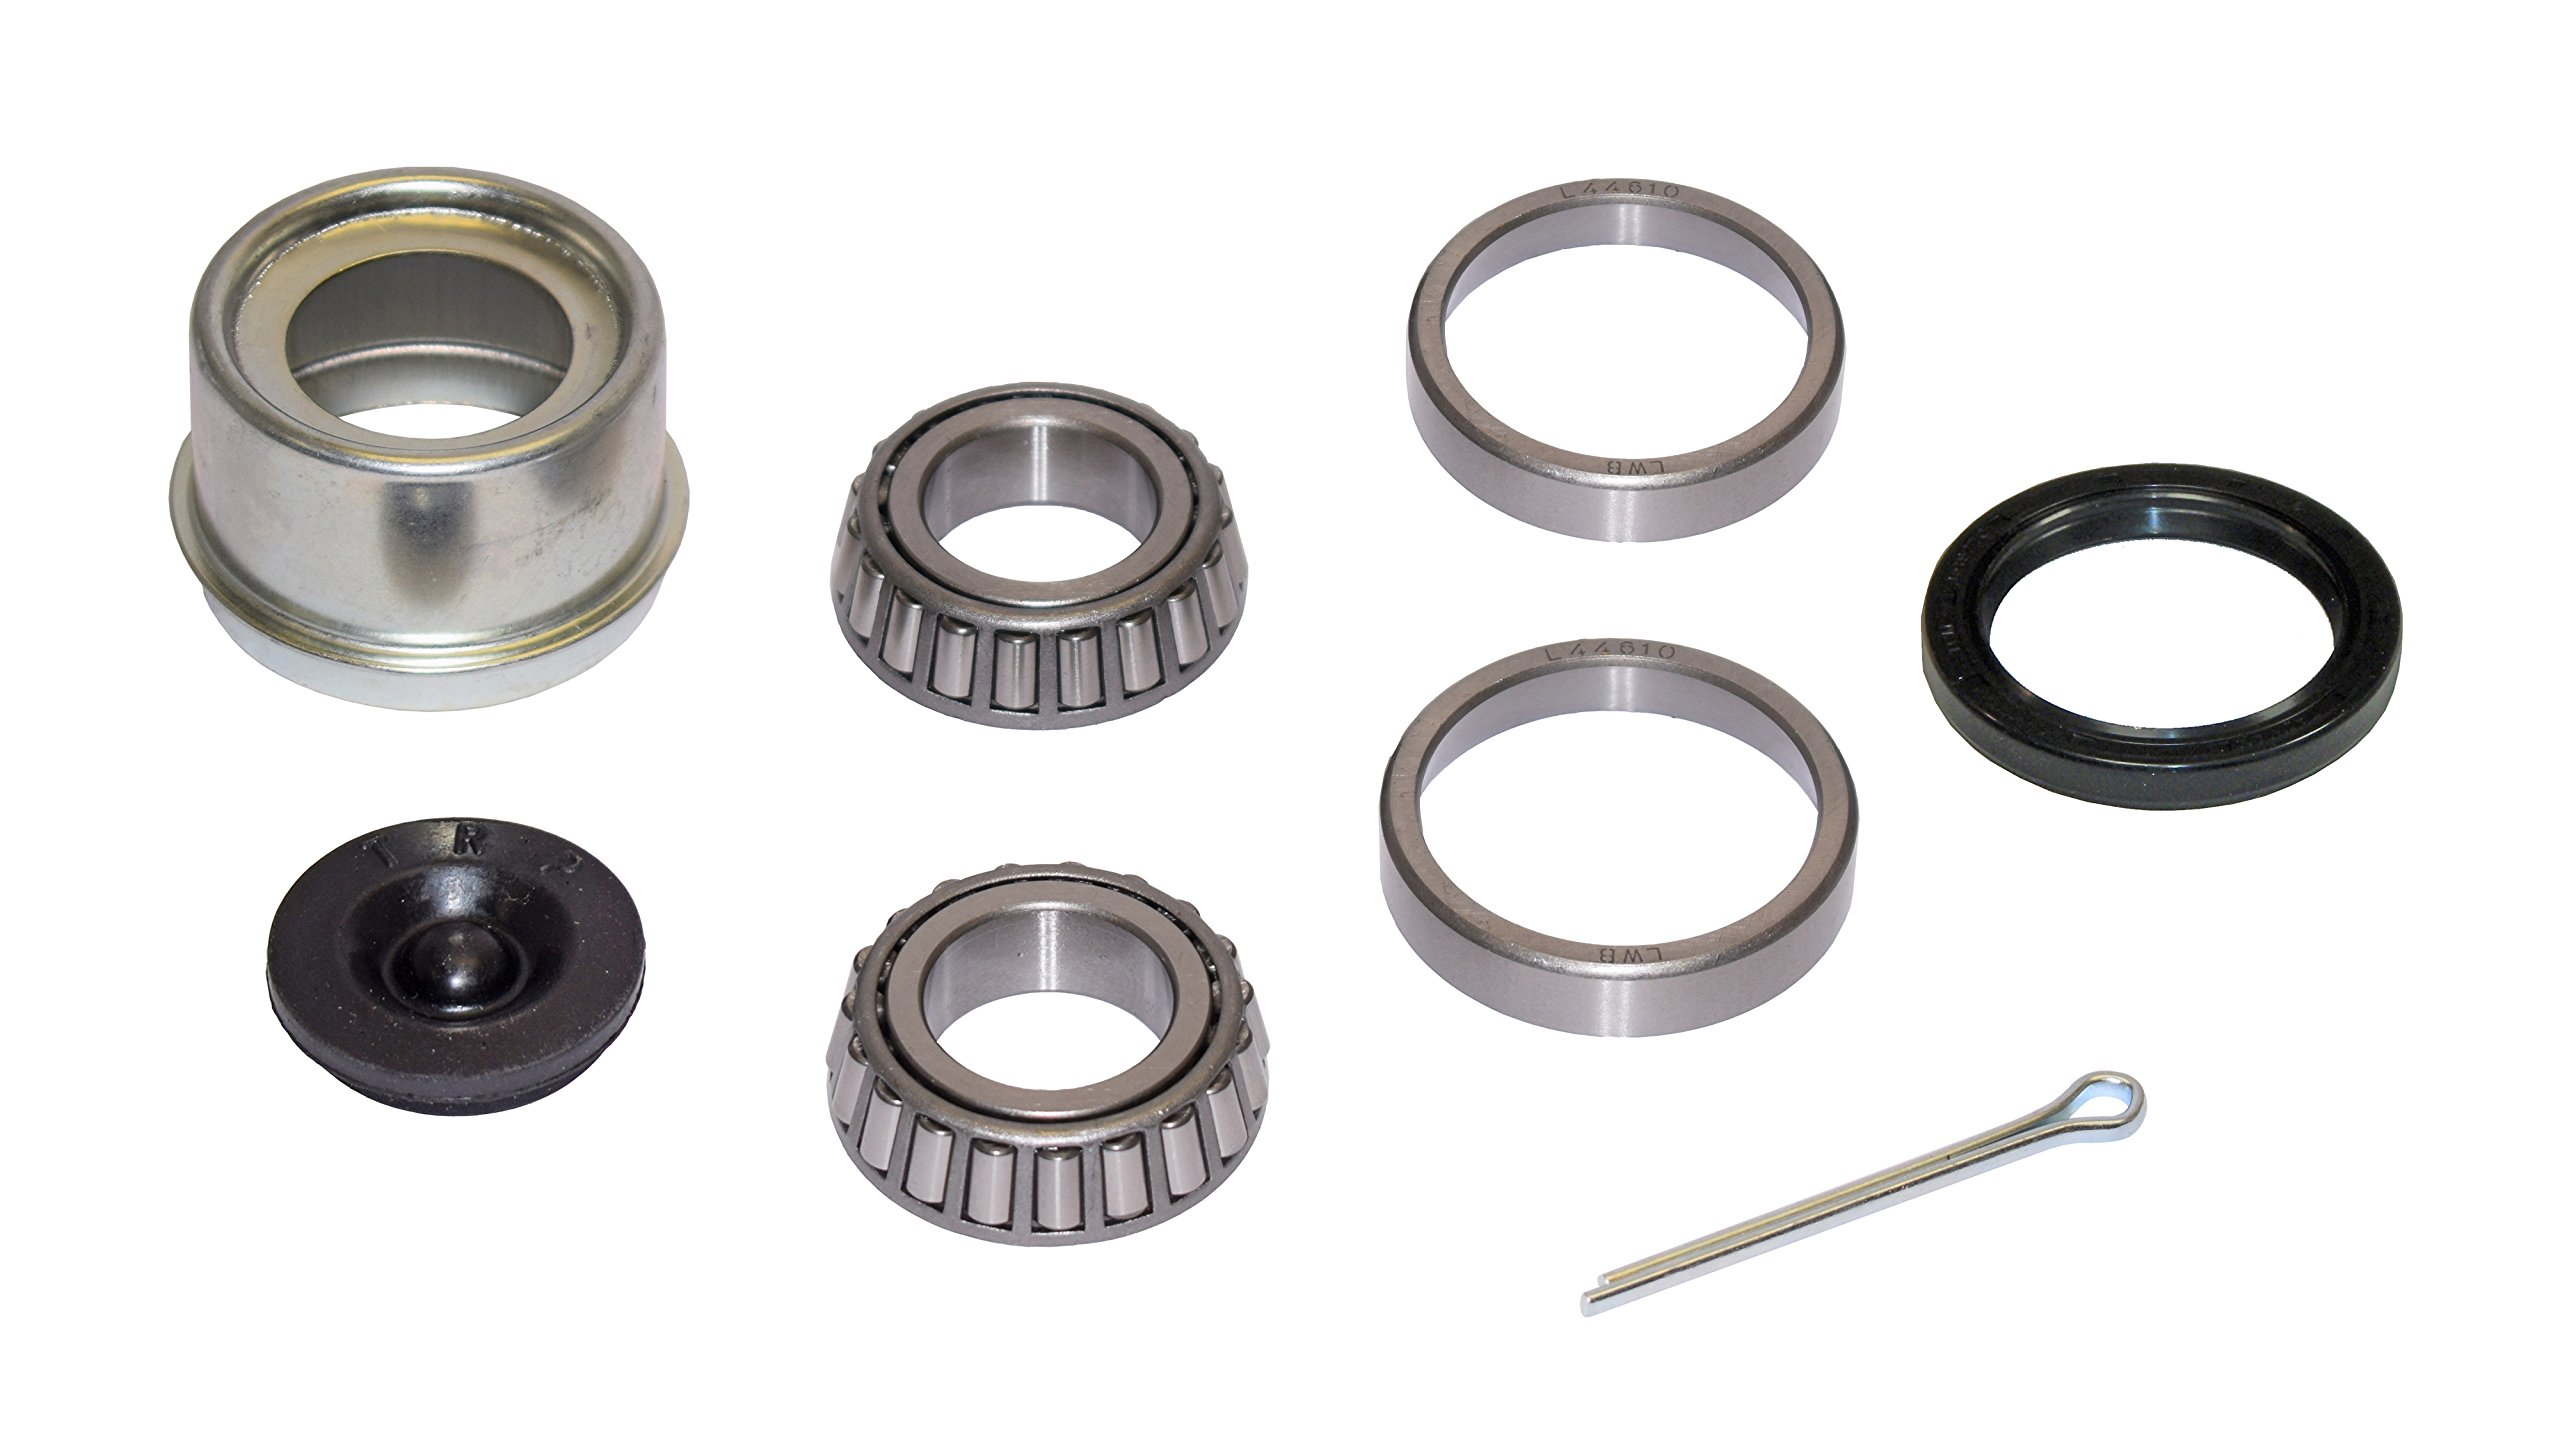 Rigid Hitch Trailer Bearing Repair Kit (280454-EZ) For 1-1/16 Inch Straight Spindle - Includes E-Z Lube Cap With Plug